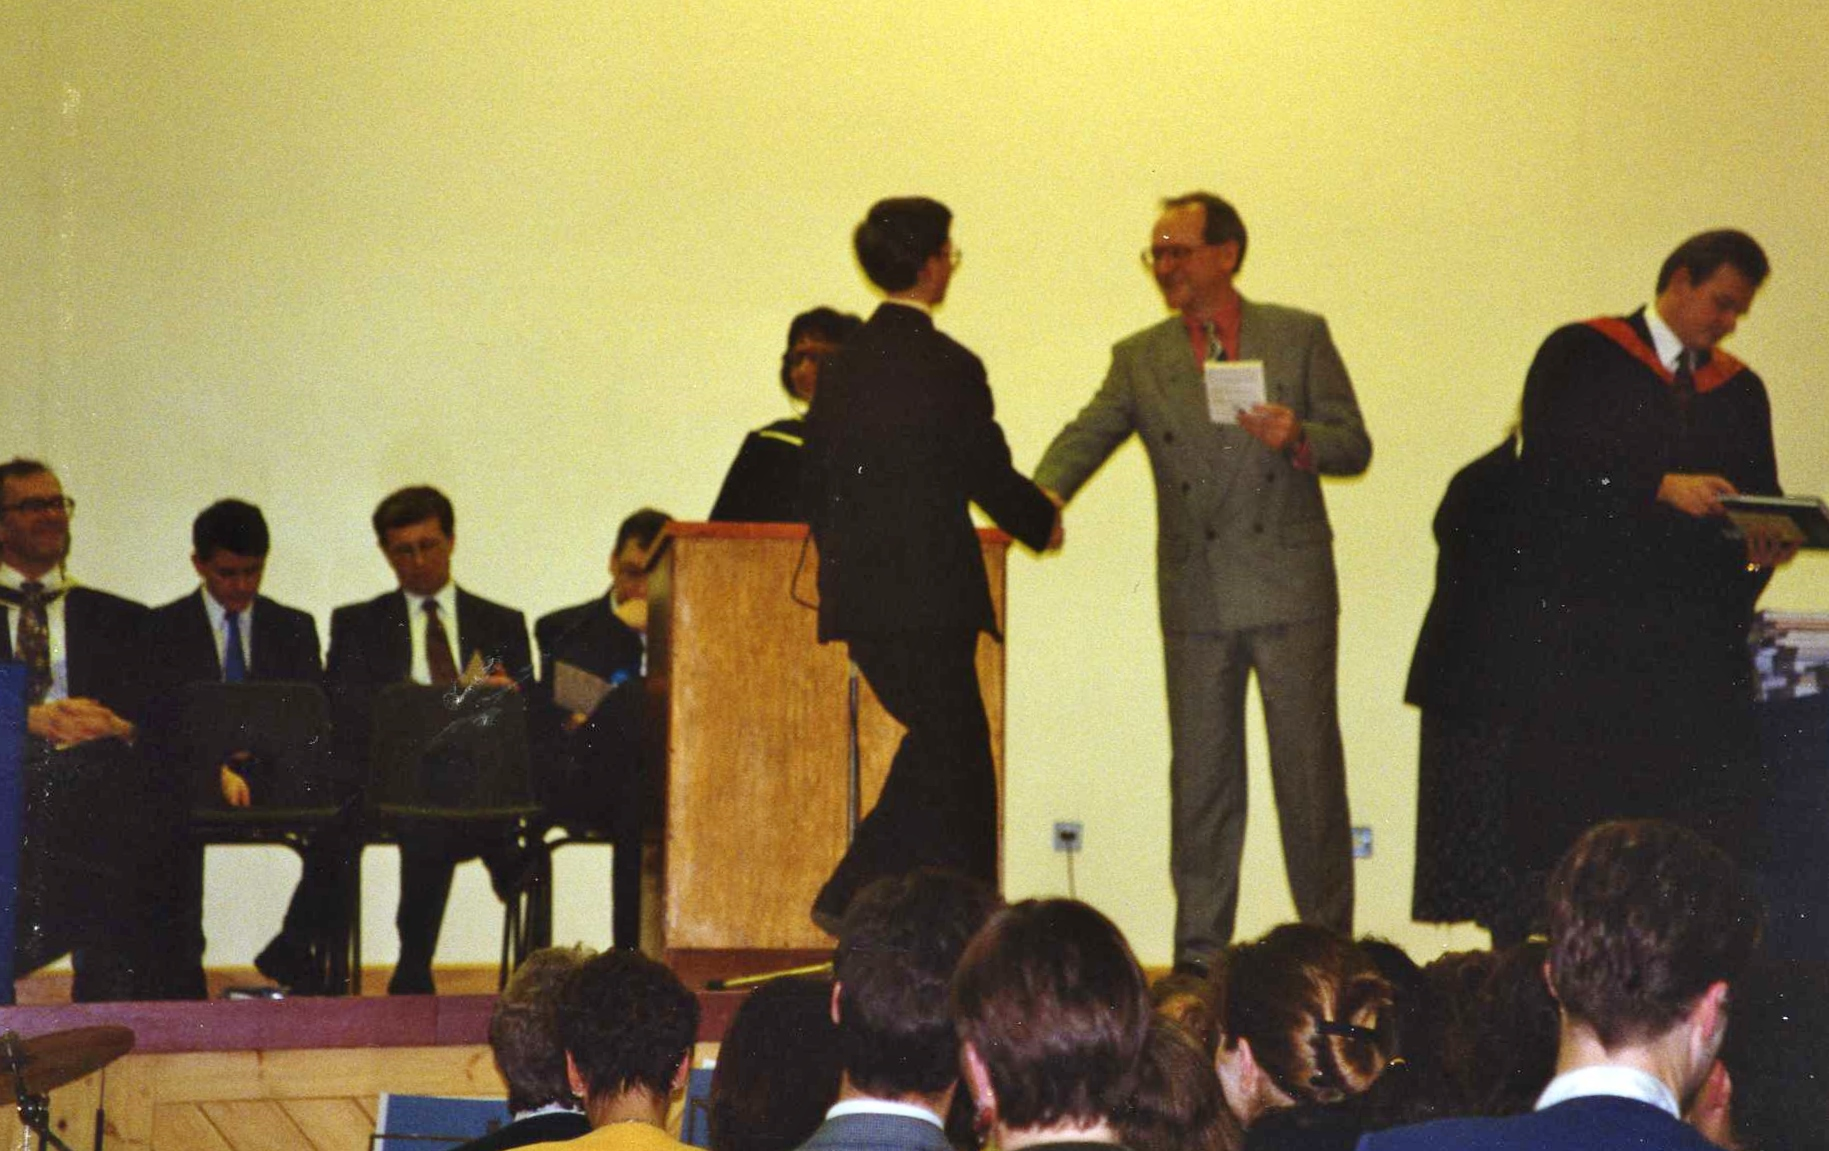 Timothy as a pupil of the school, receiving an award in November 1994!